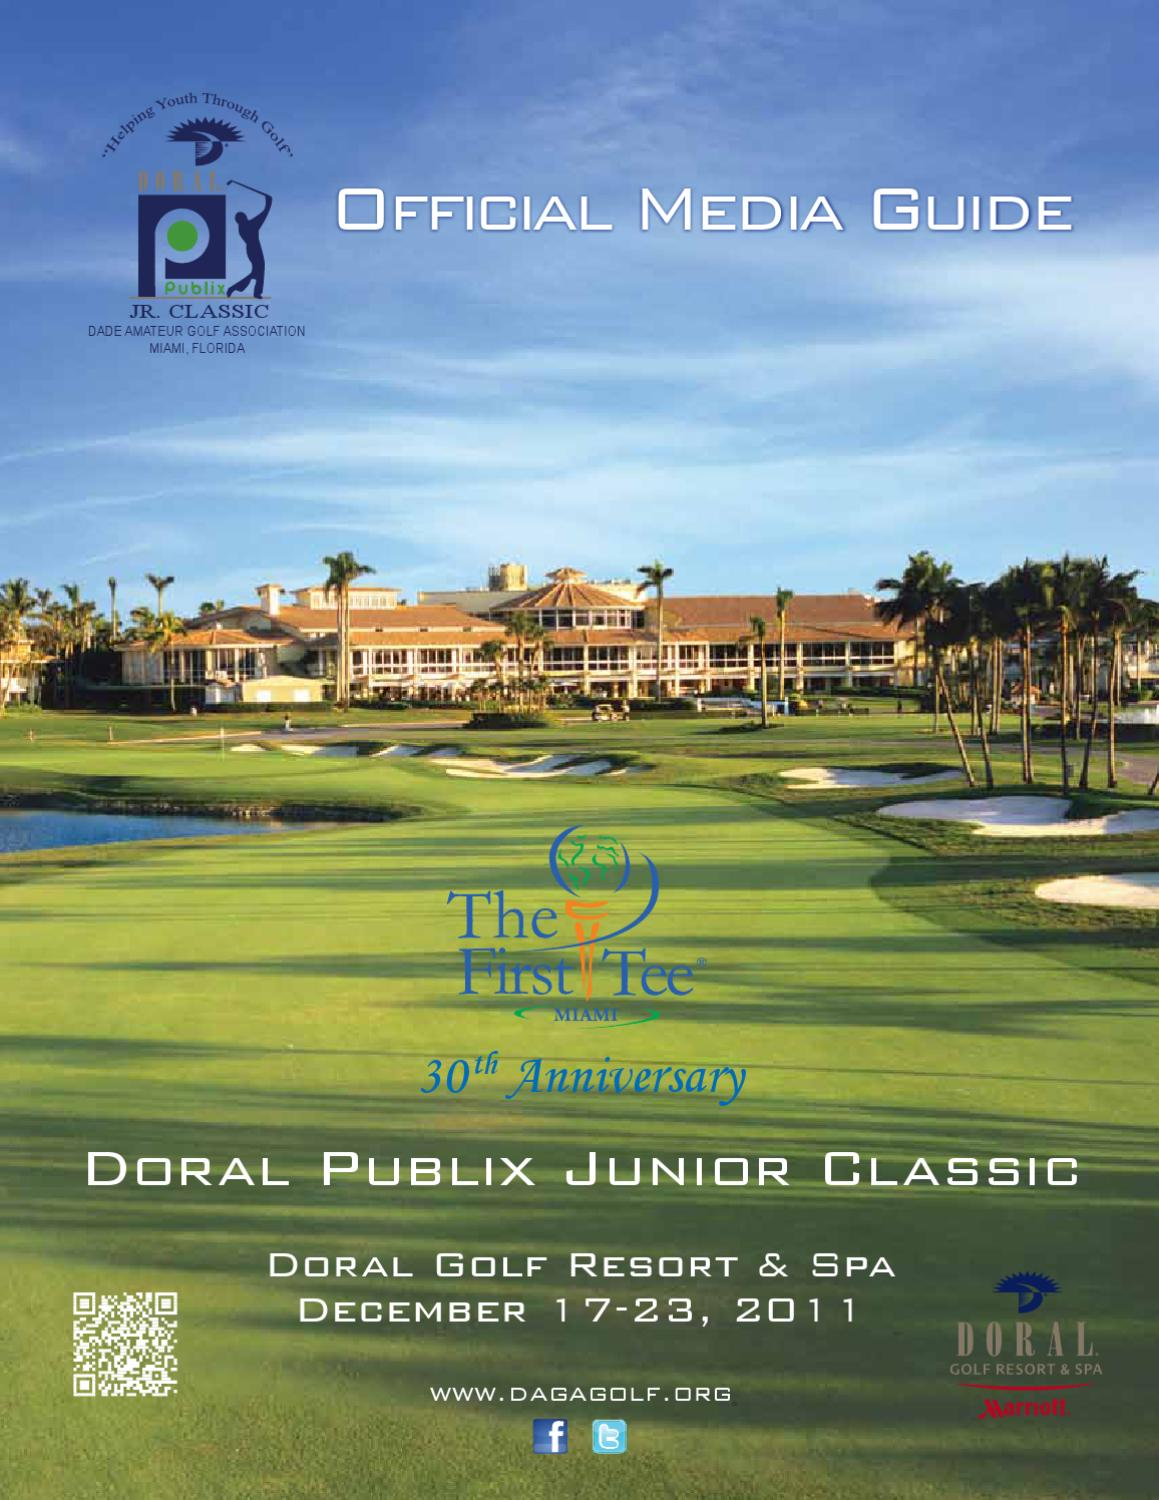 official media guide by barnews r group issuu